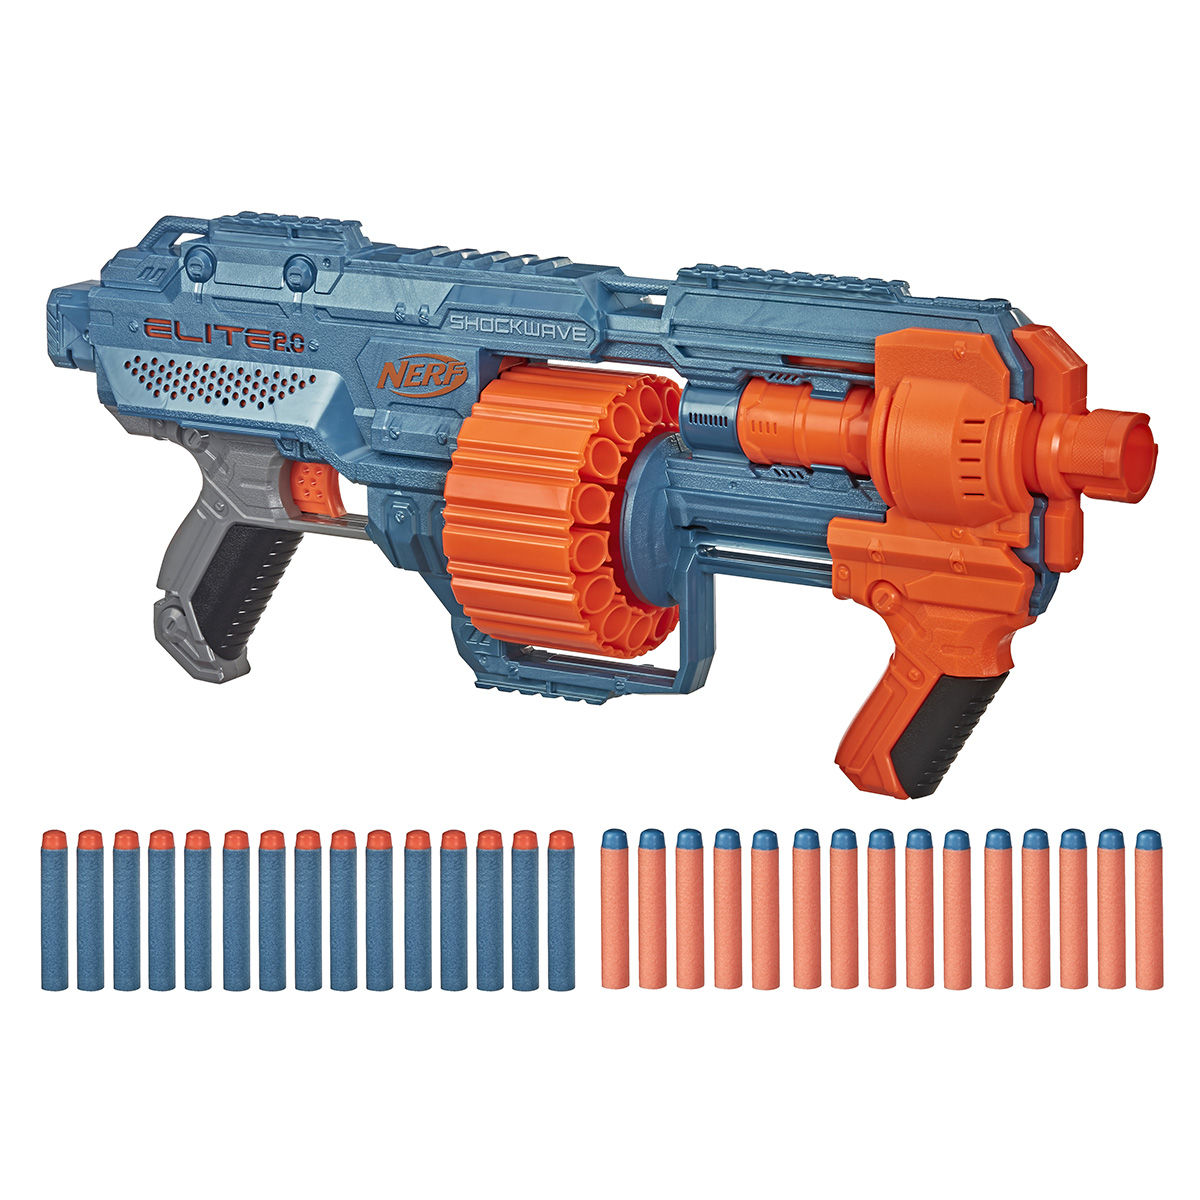 Blaster Nerf Elite 2.0 Shockwave RD-15